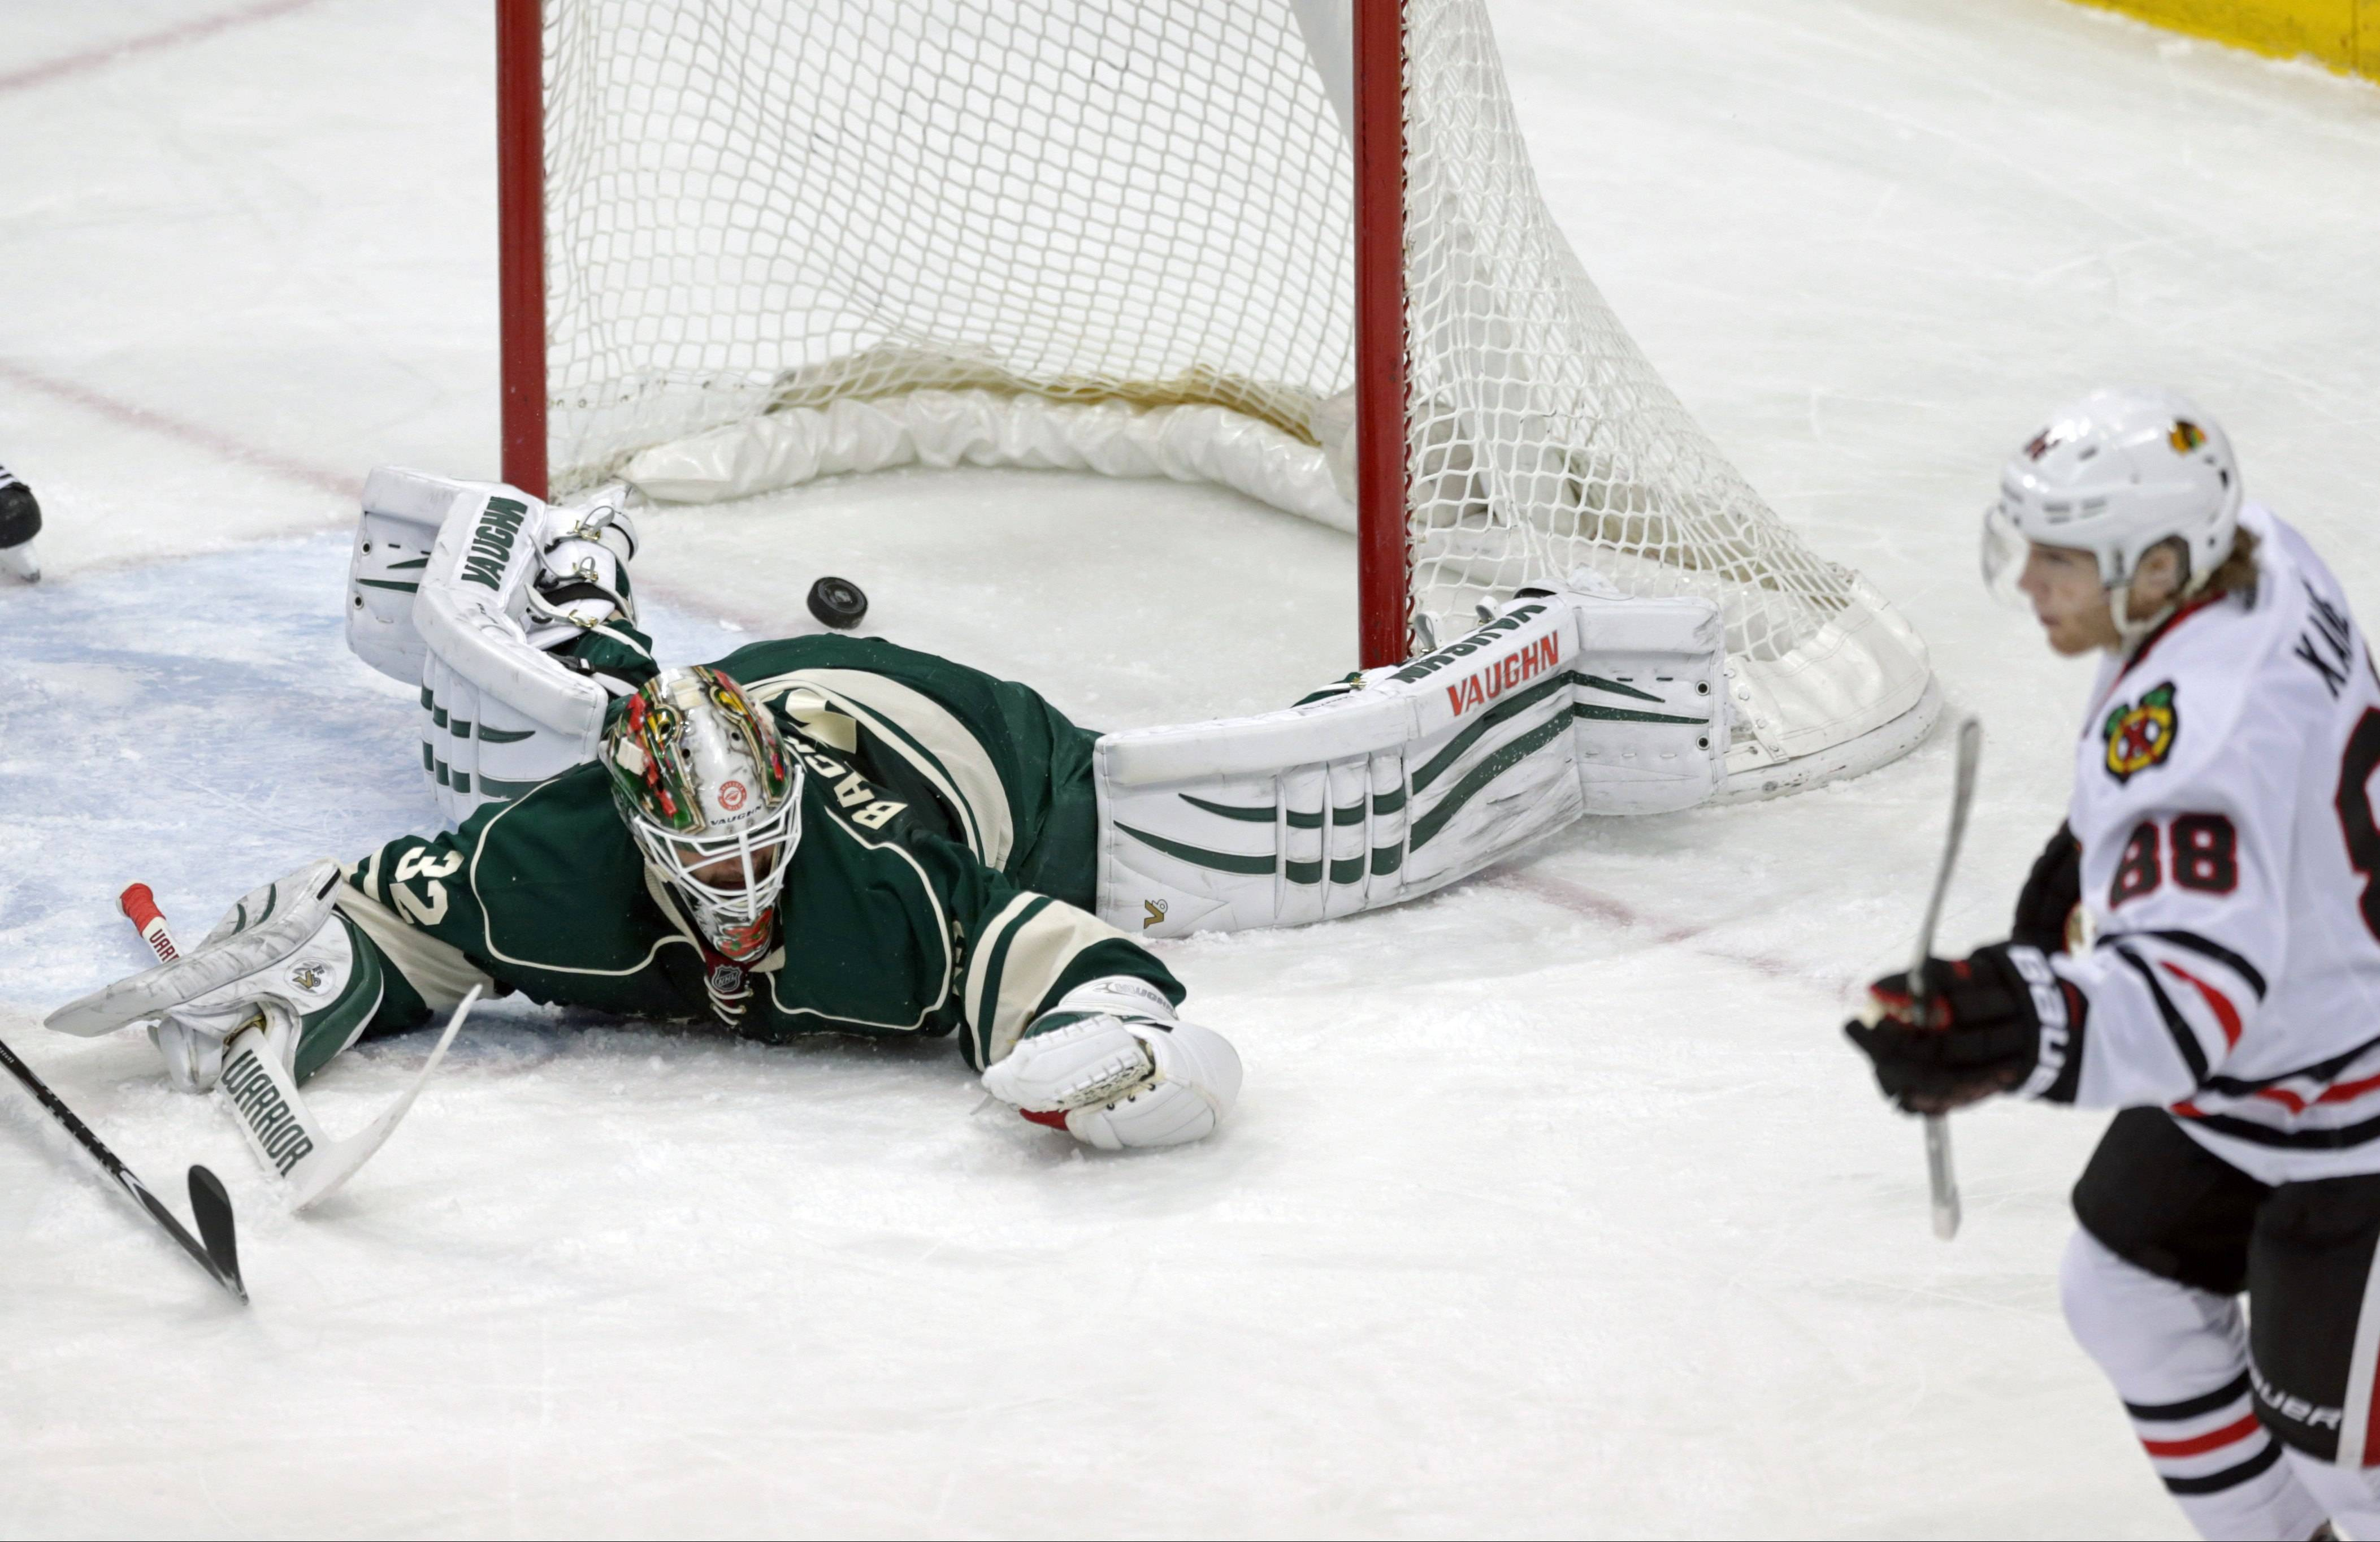 Minnesota Wild goalie Niklas Backstrom, left gives up a power-play goal to Blackhawks' Patrick Kane, right, in the first period of an NHL hockey game on Thursday. The goal was Kane's 20th of the season.